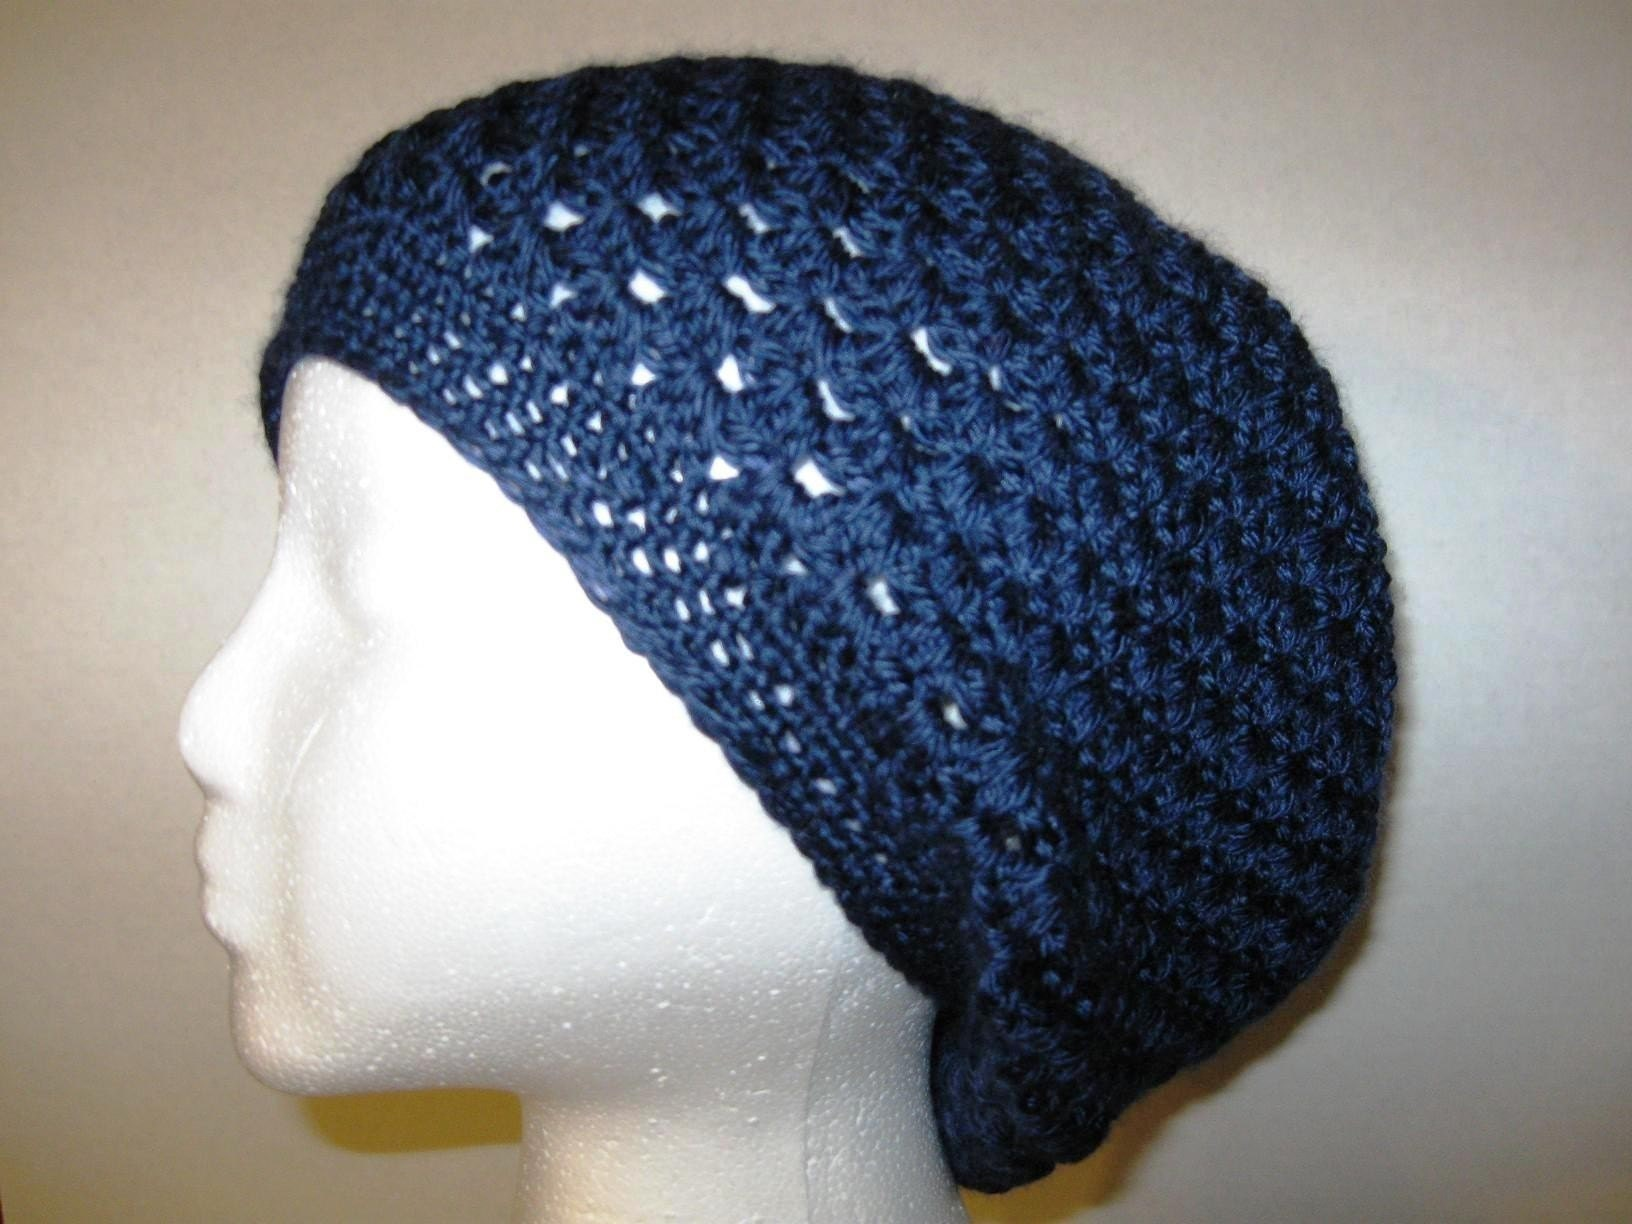 Ravelry: Soft Football Chemo Hat pattern by Darleen Hopkins